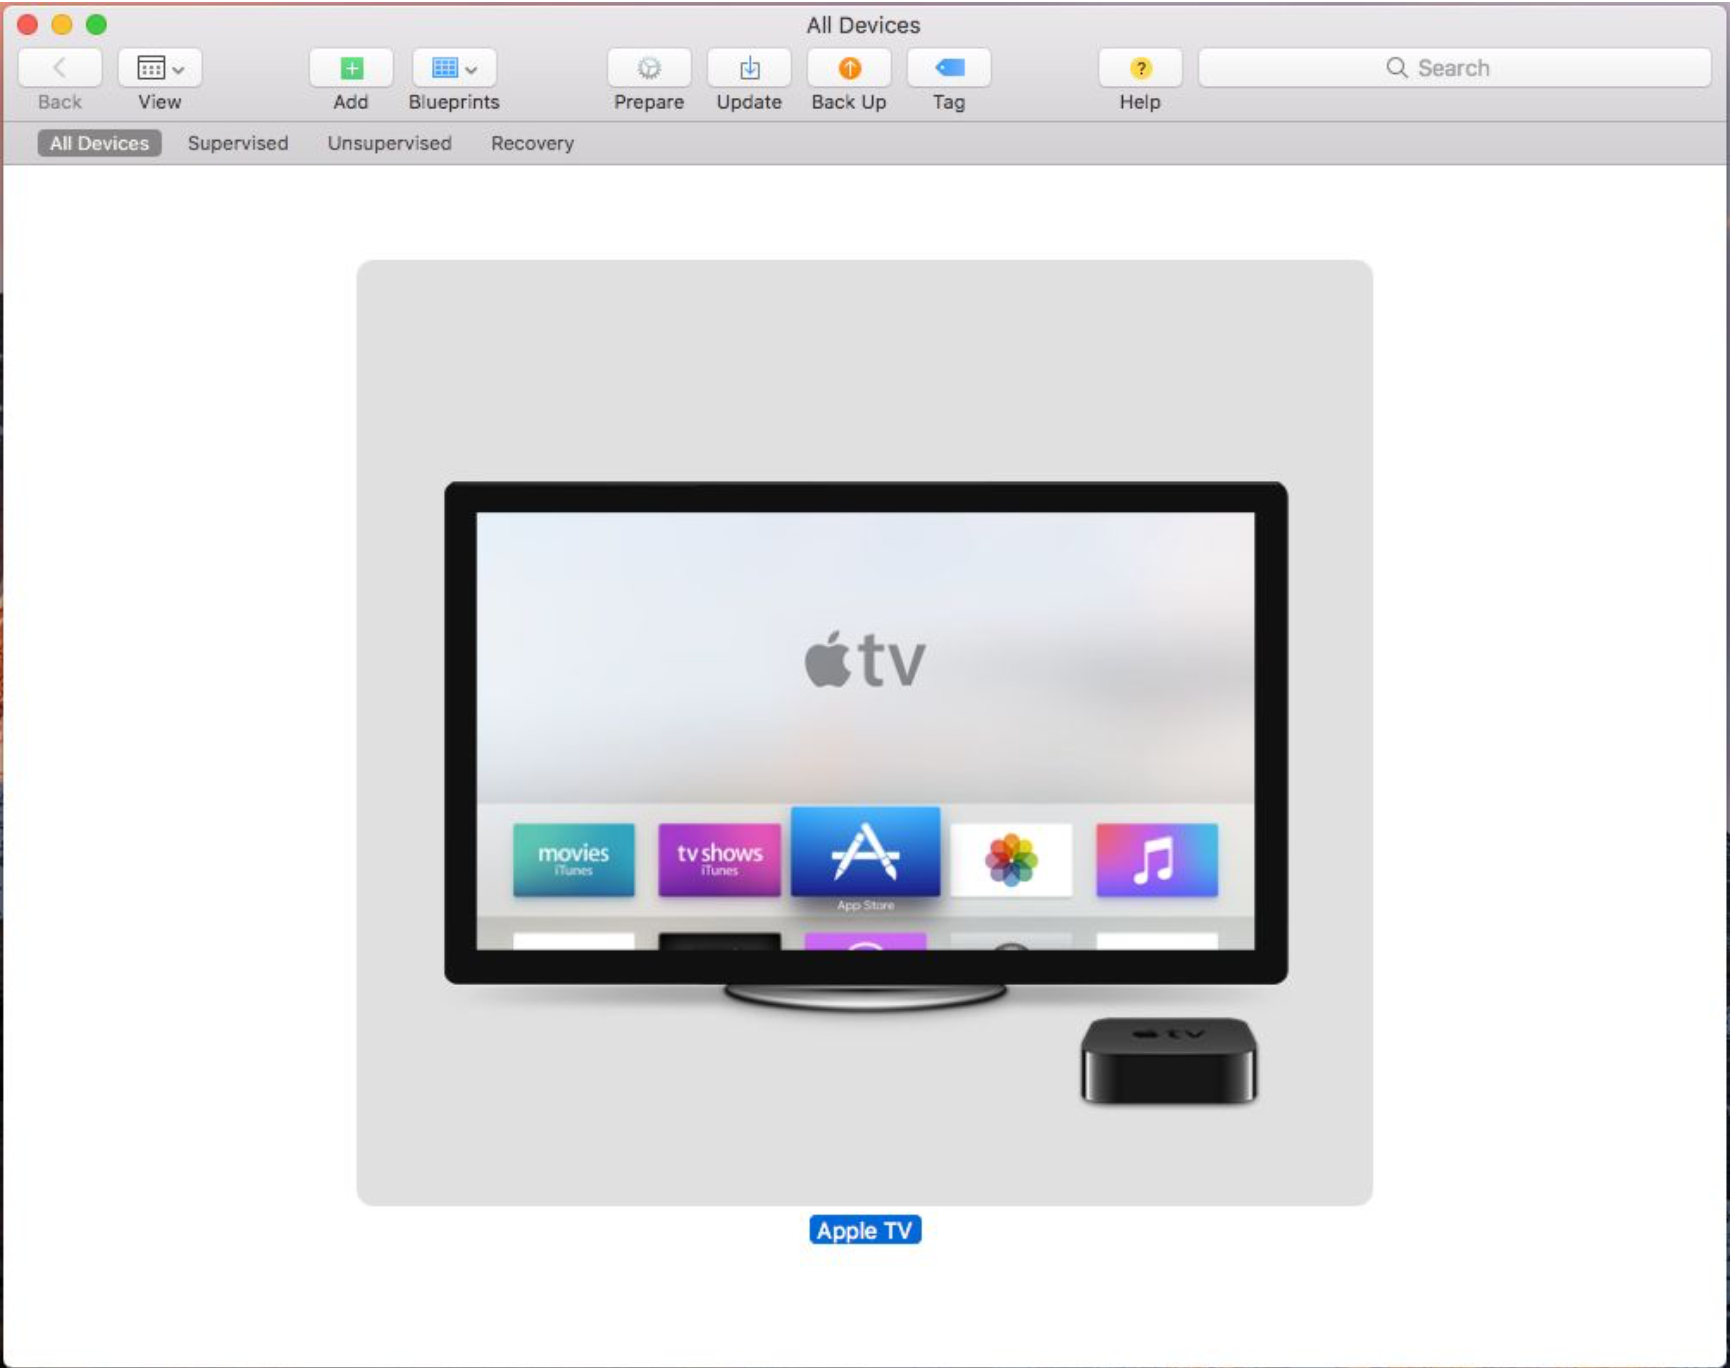 Charles proxy guide for apple tv tv os 11 testlio help center step 1 supervise device malvernweather Gallery